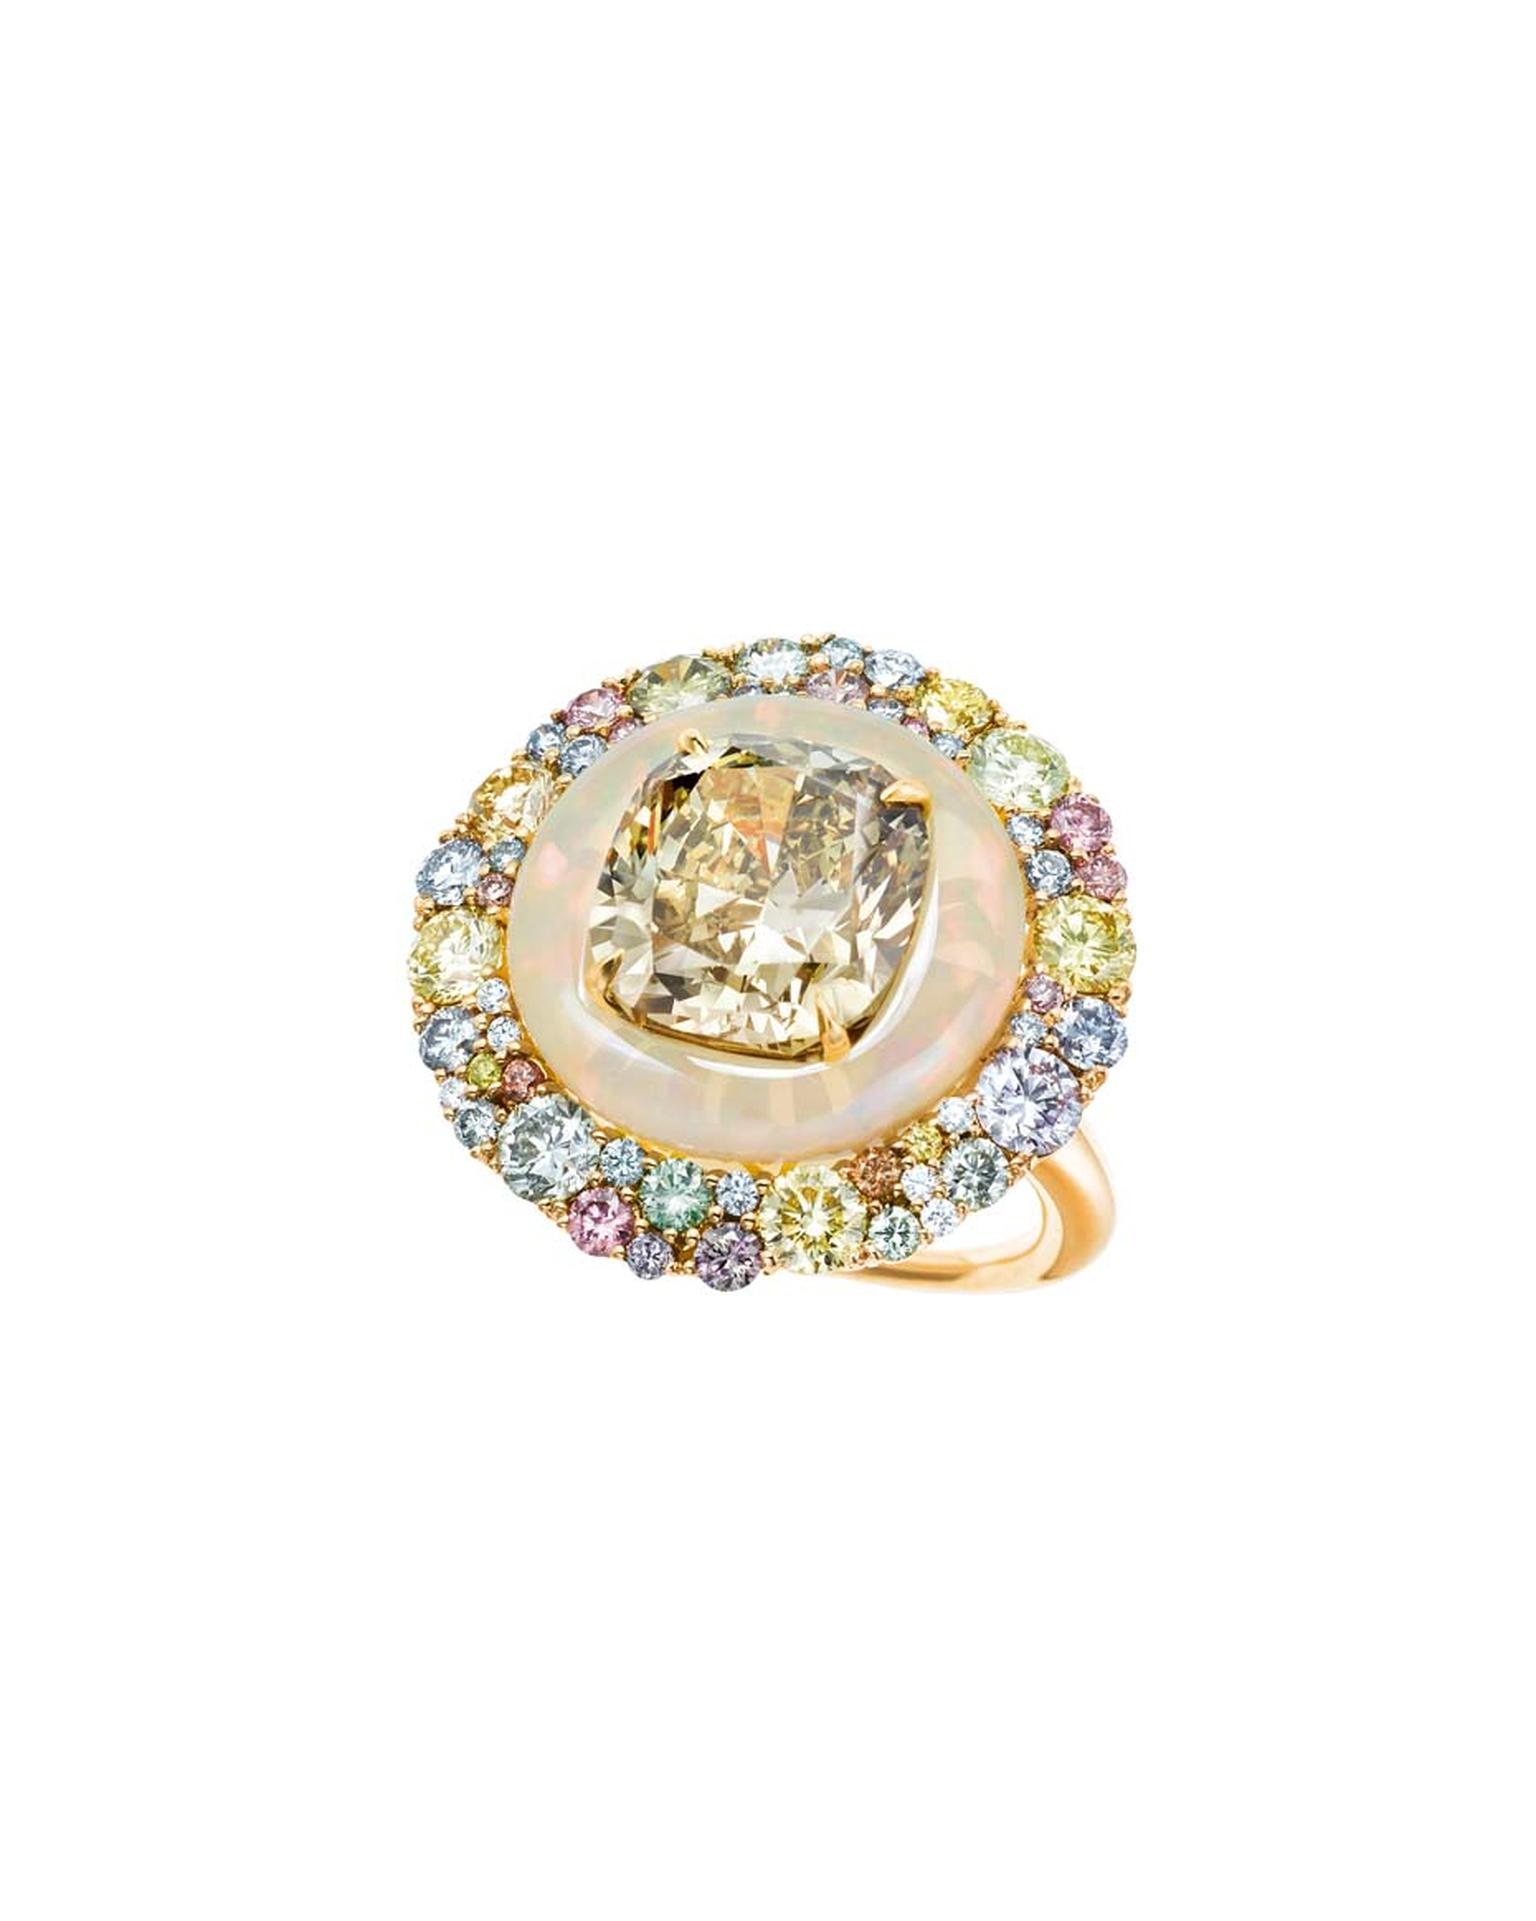 The deep brownish greenish yellow diamond in Tiffany & Co.'s ring is inlaid into an opal encircled by a swath of coloured diamonds.